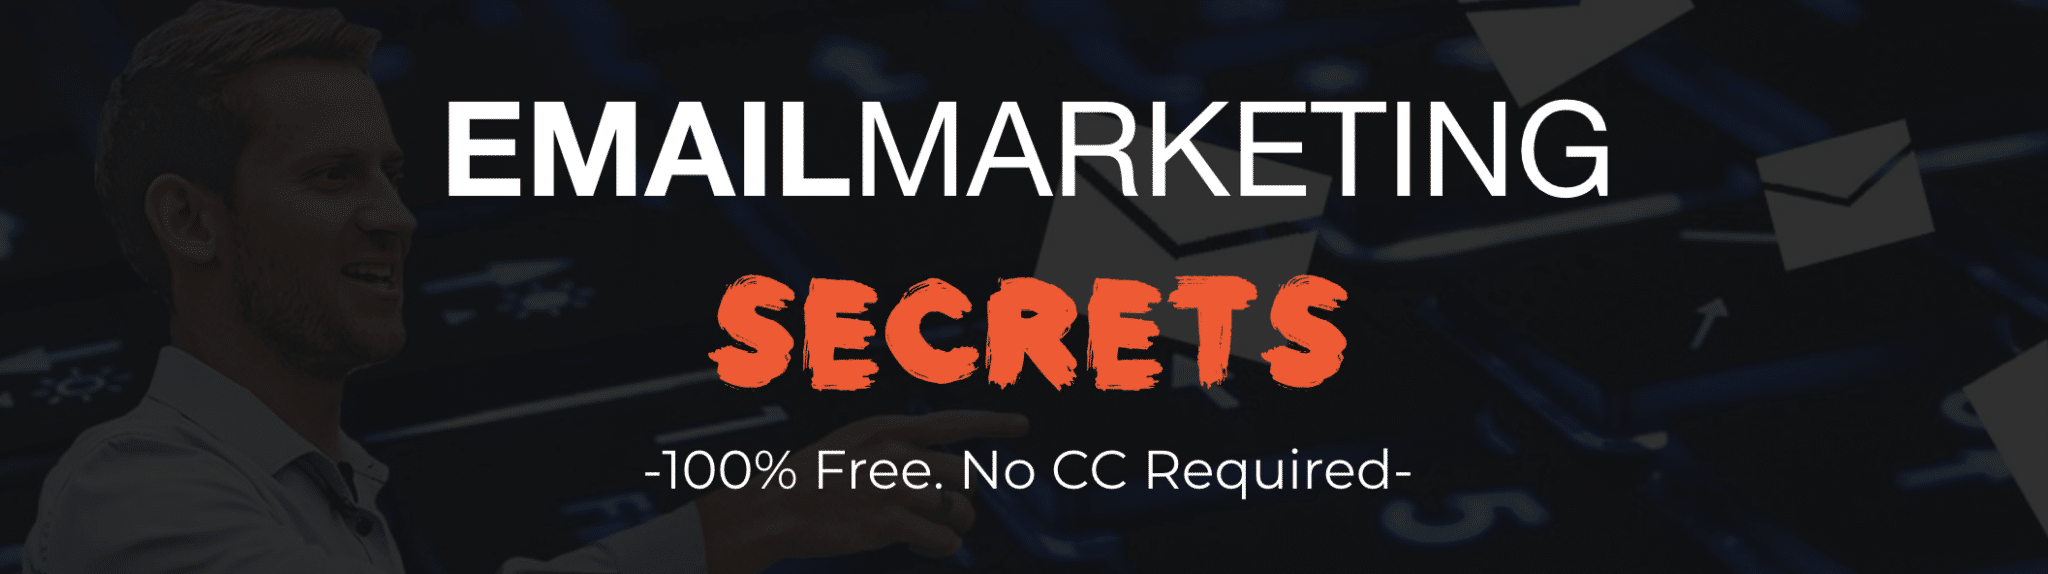 Email Marketing Secrets Free Course